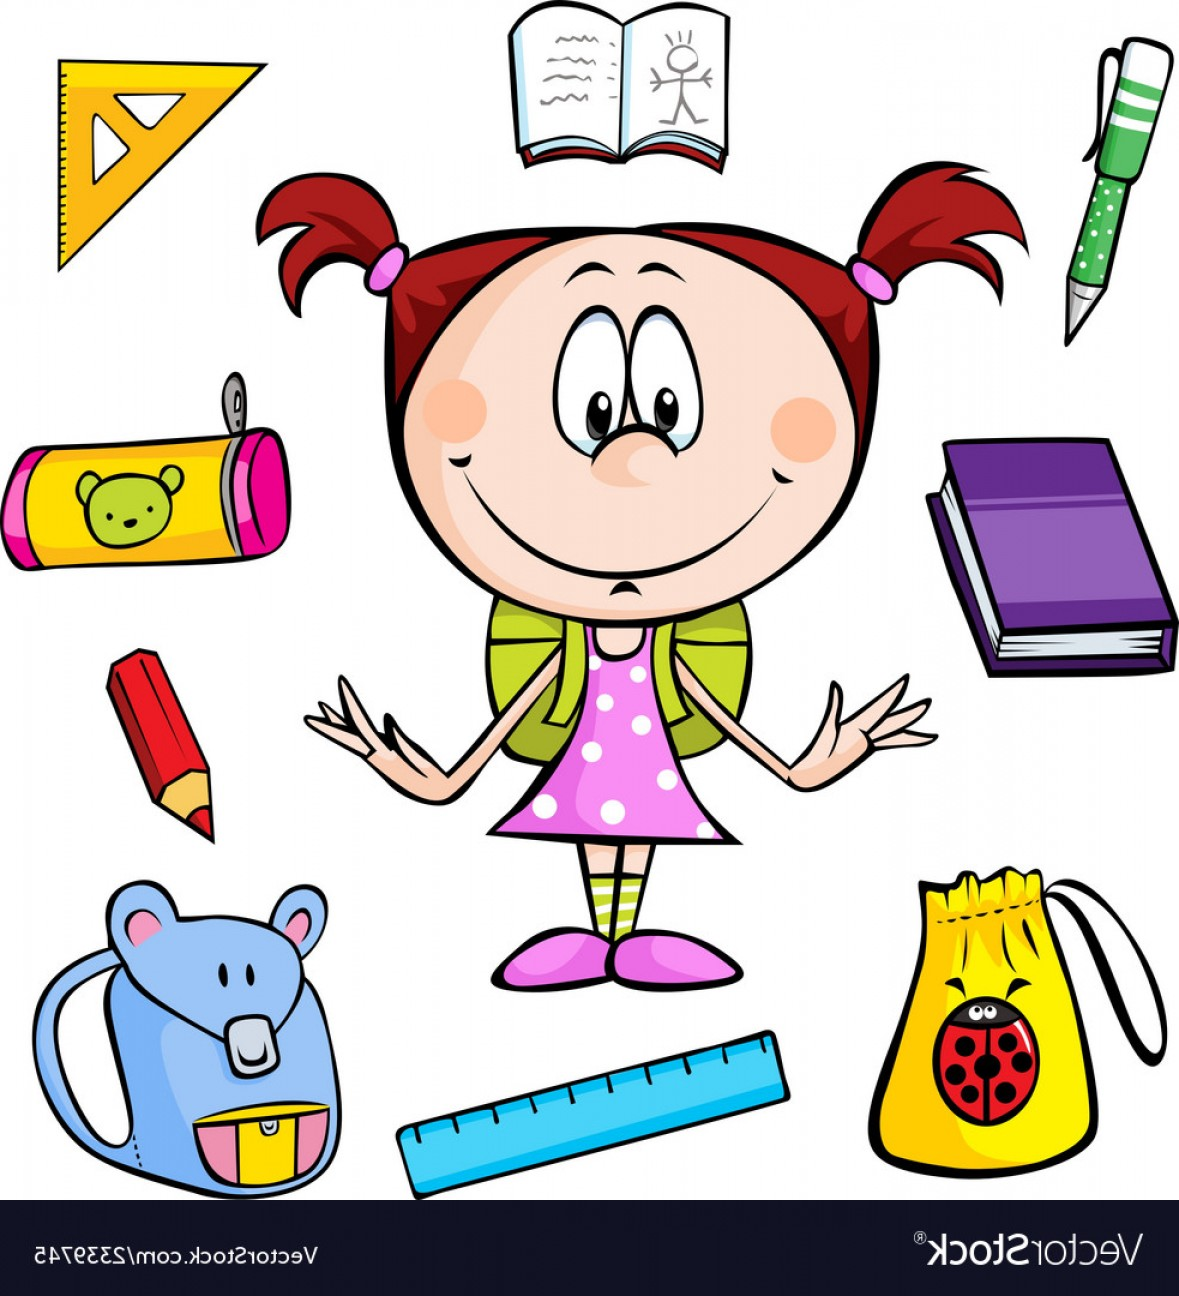 Supplies Vector Graphic: A Girl With School Supplies Vector